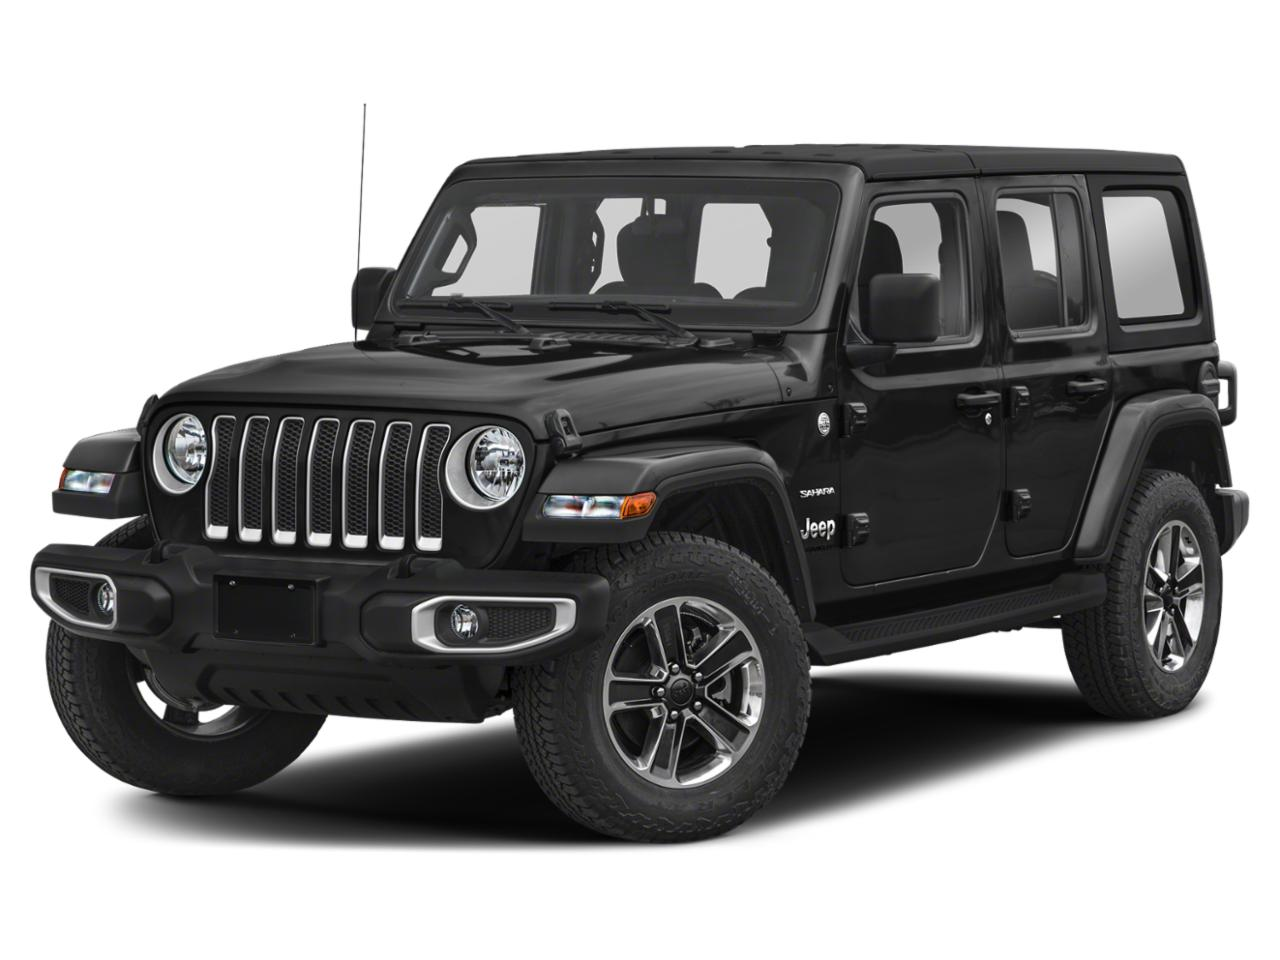 2018 Jeep Wrangler Unlimited Vehicle Photo in Depew, NY 14043